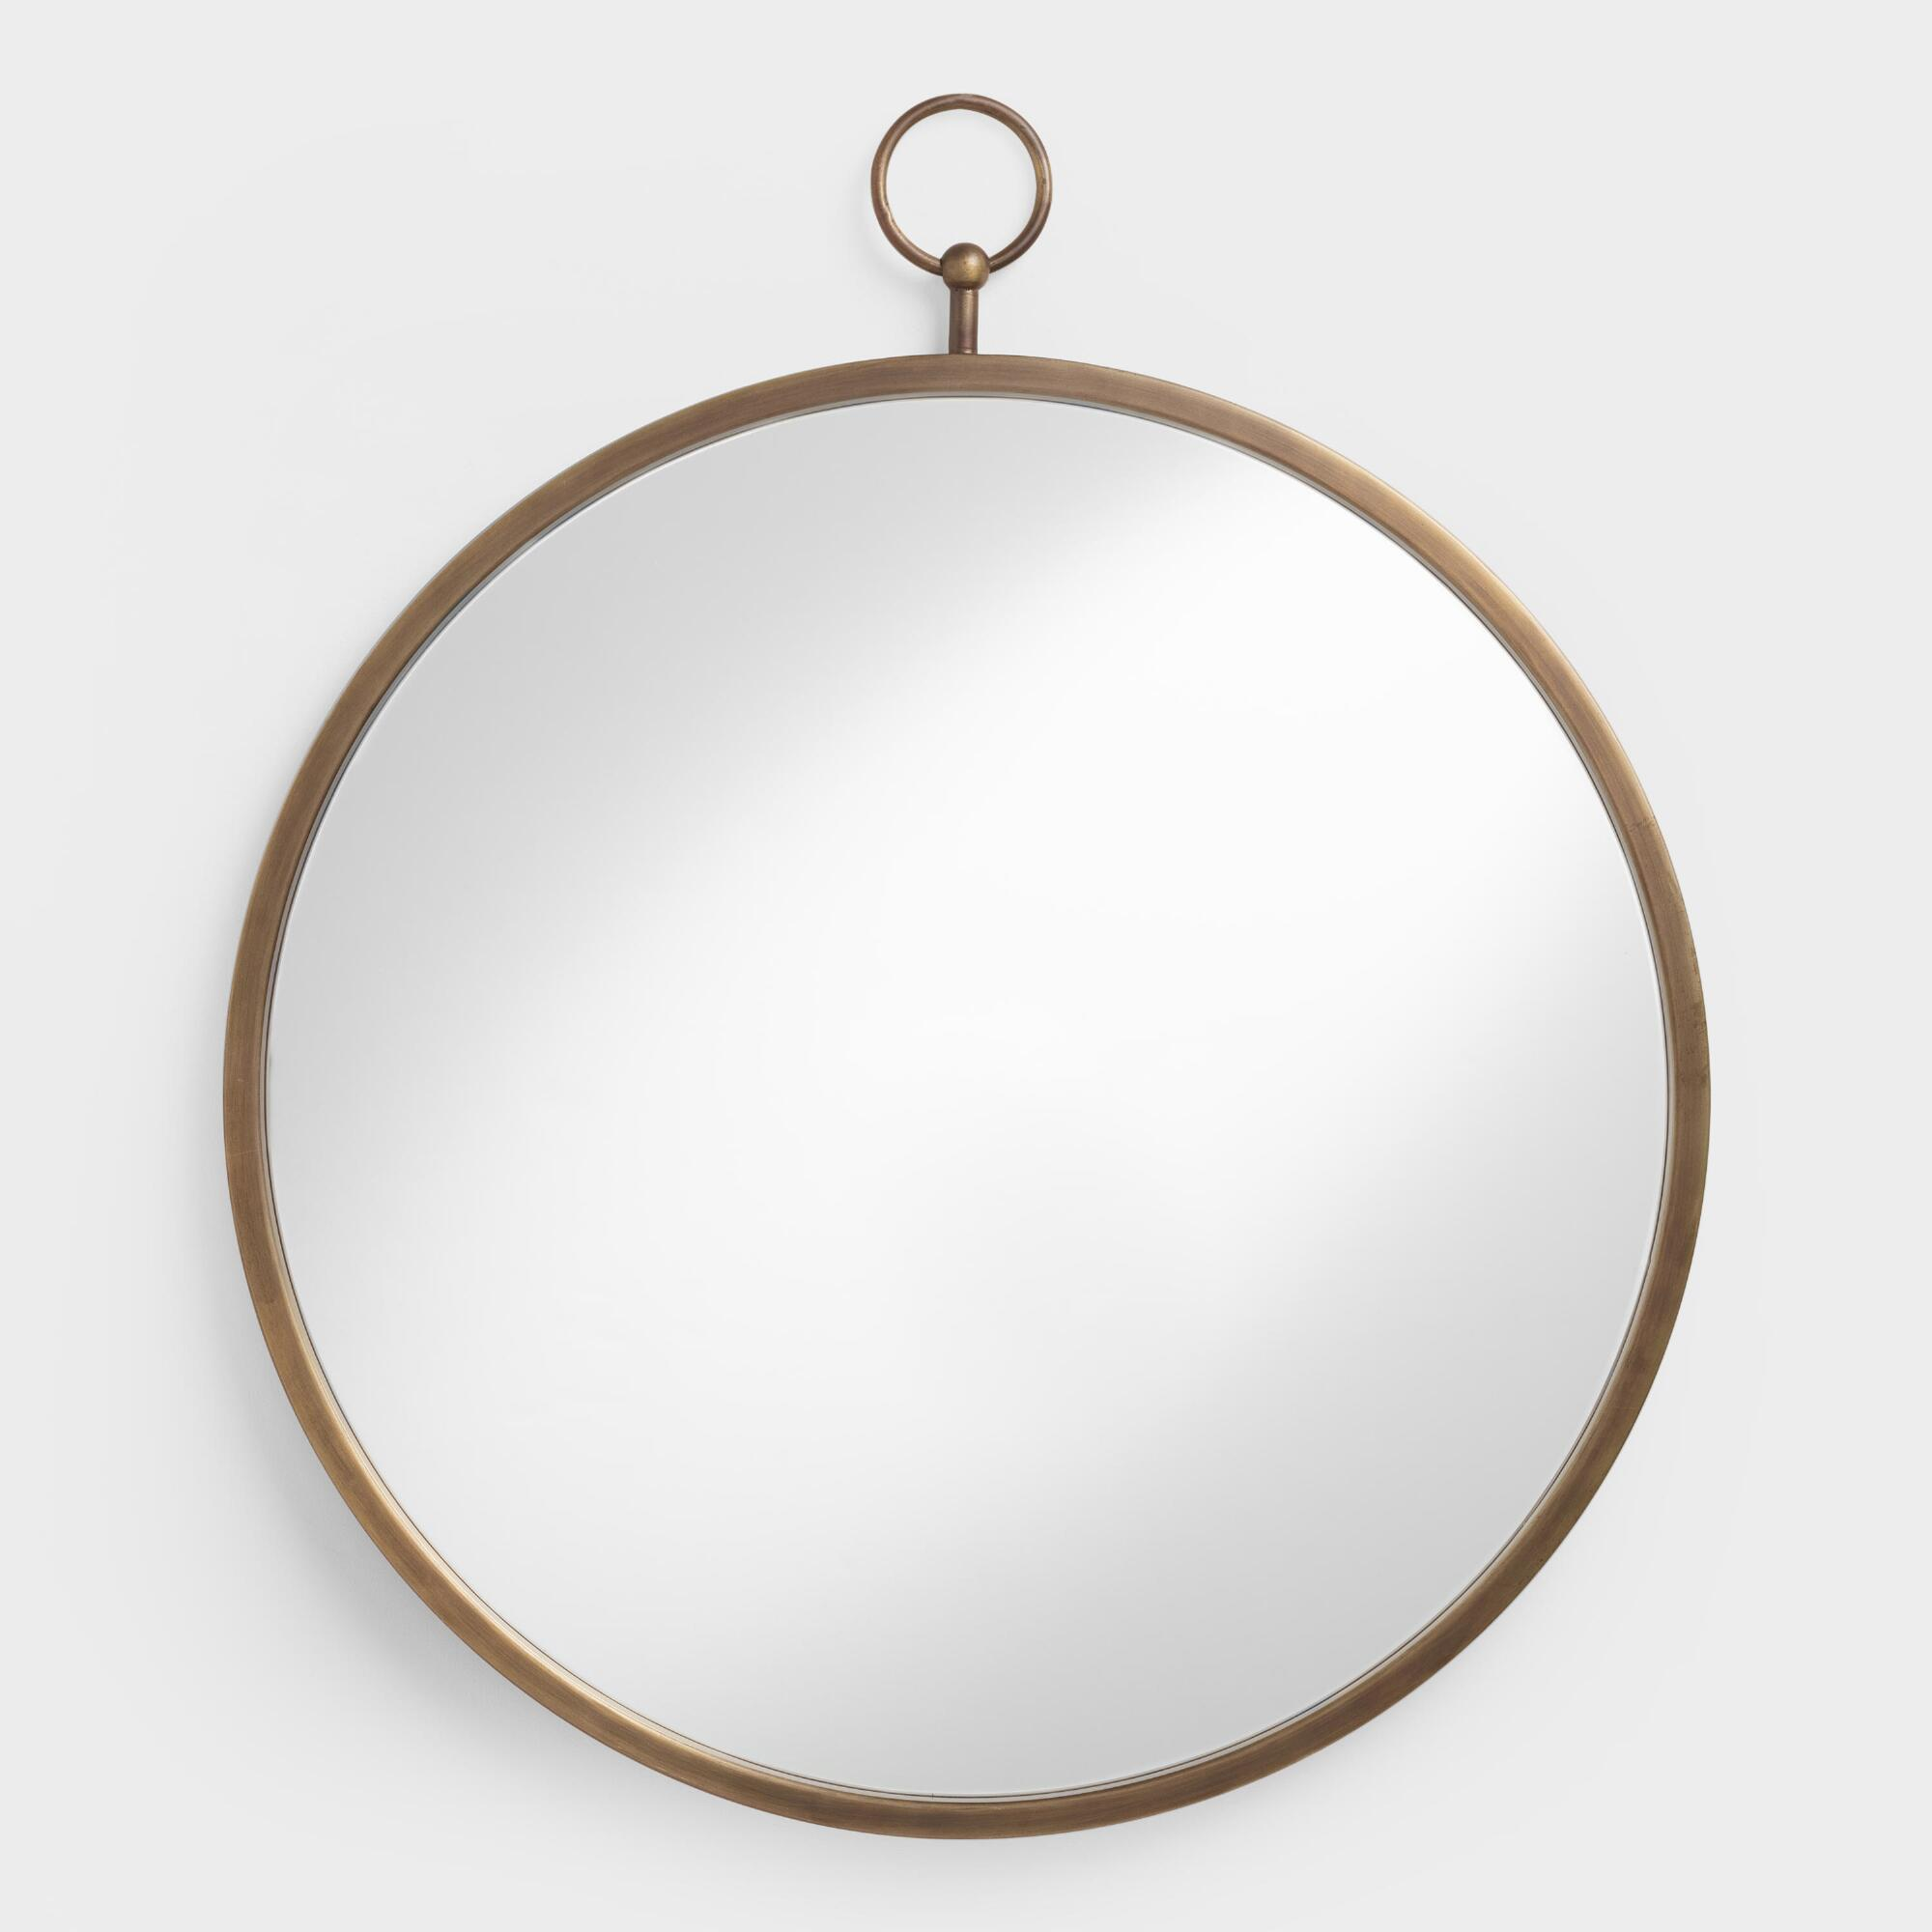 This italian circular wooden wall mirror is no longer available - Brass Metal Loop Mirror